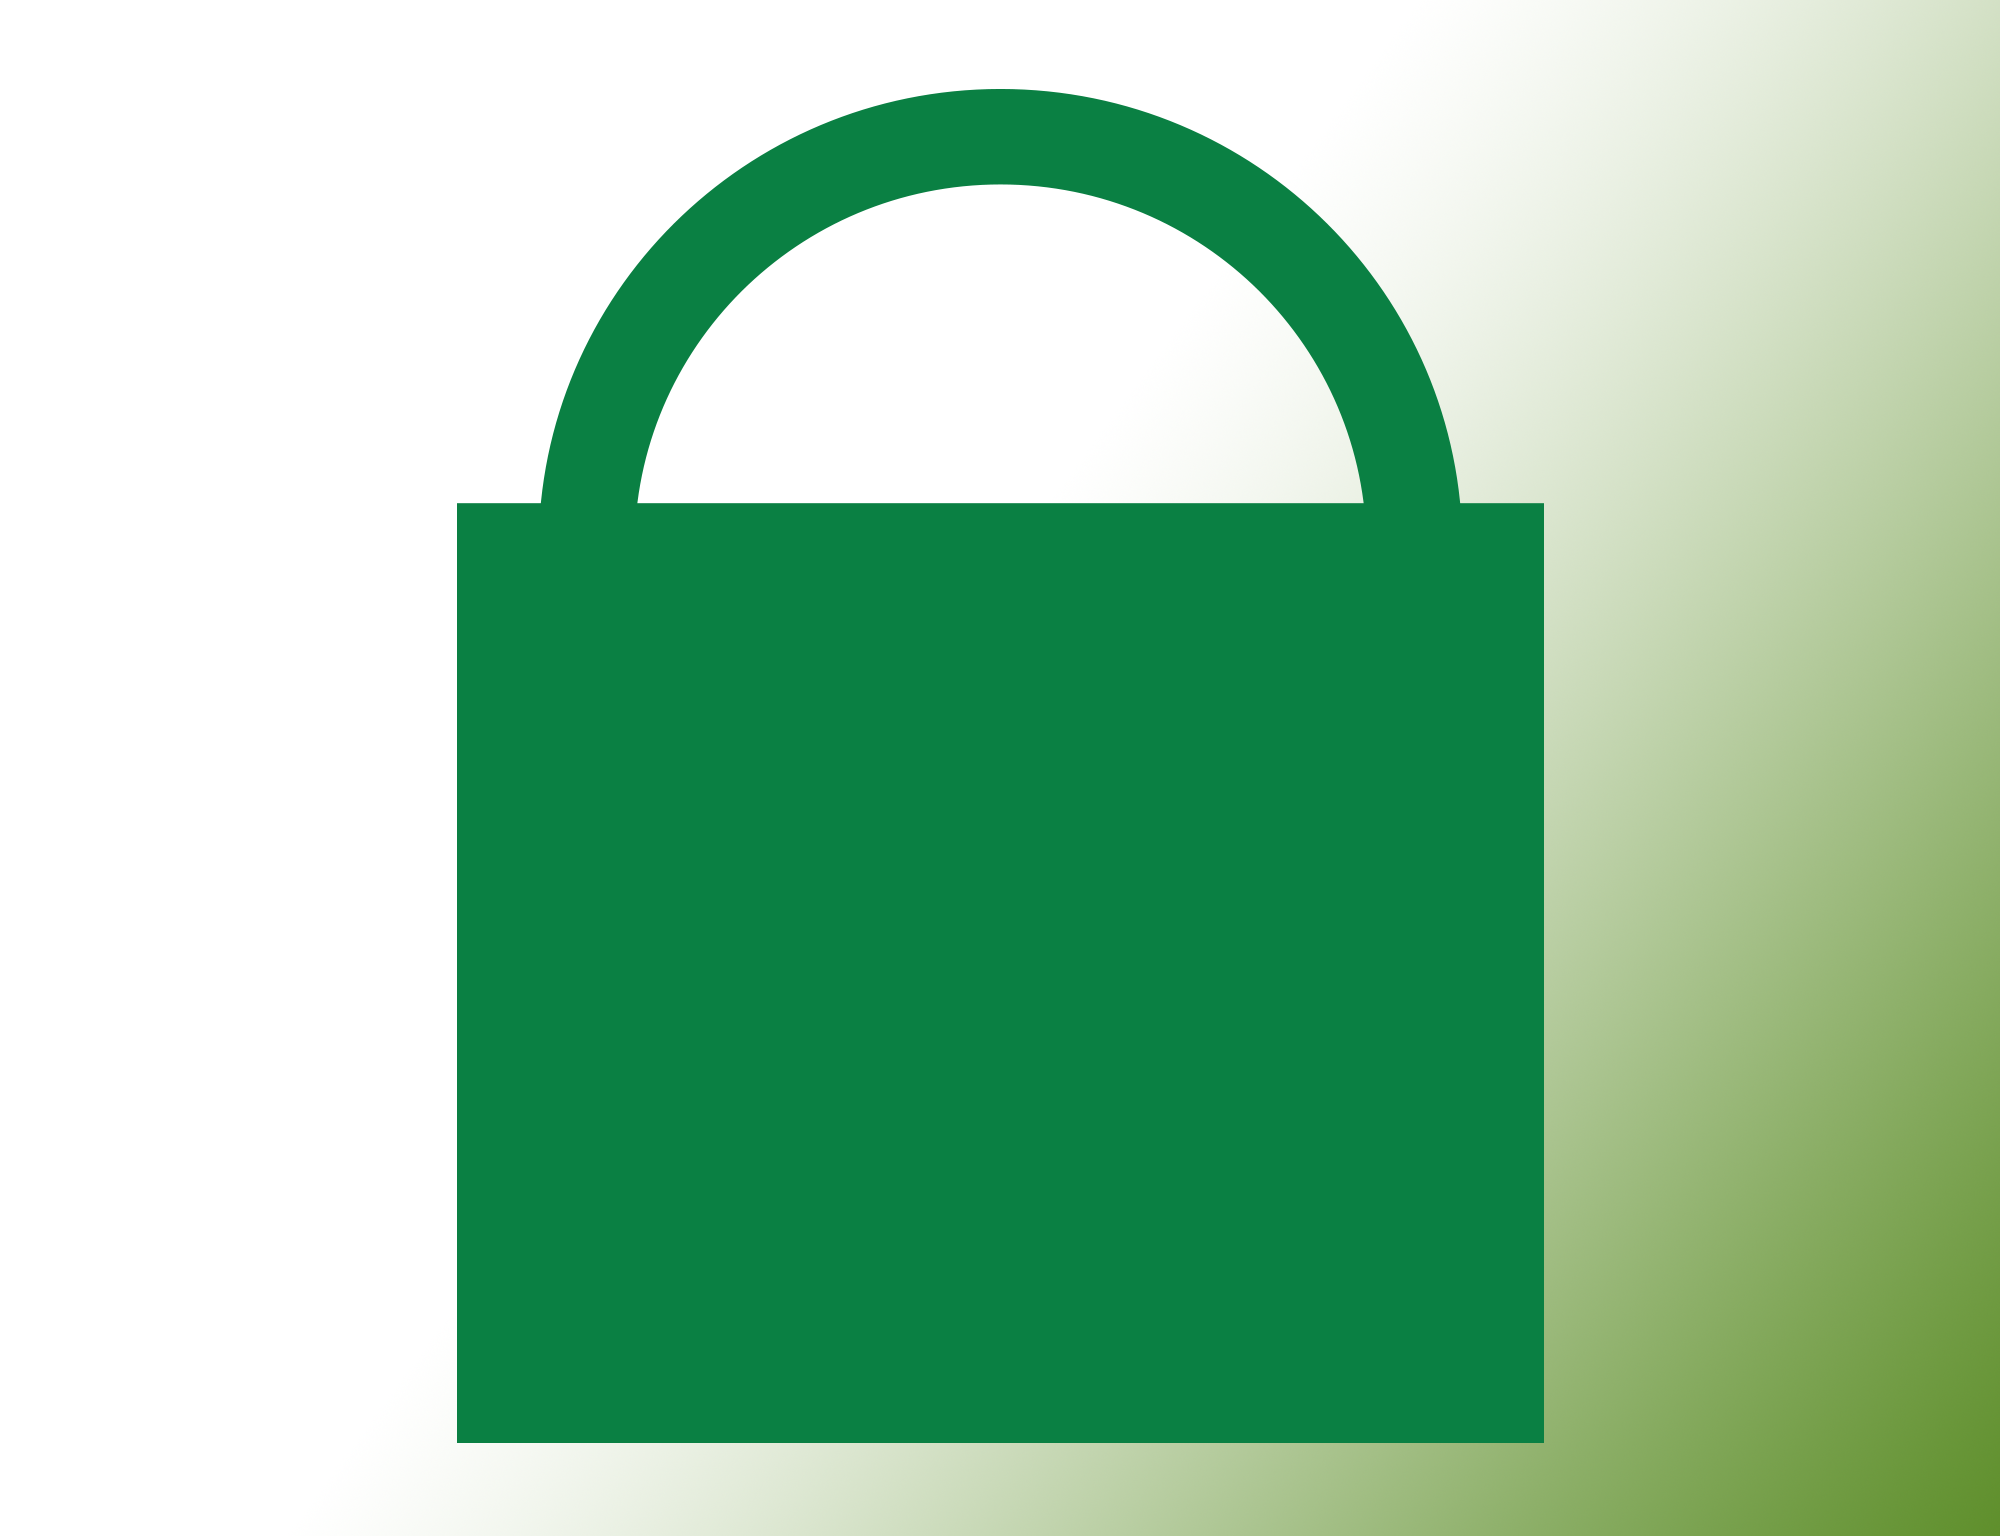 Green-padlock-with-grad-tint.png